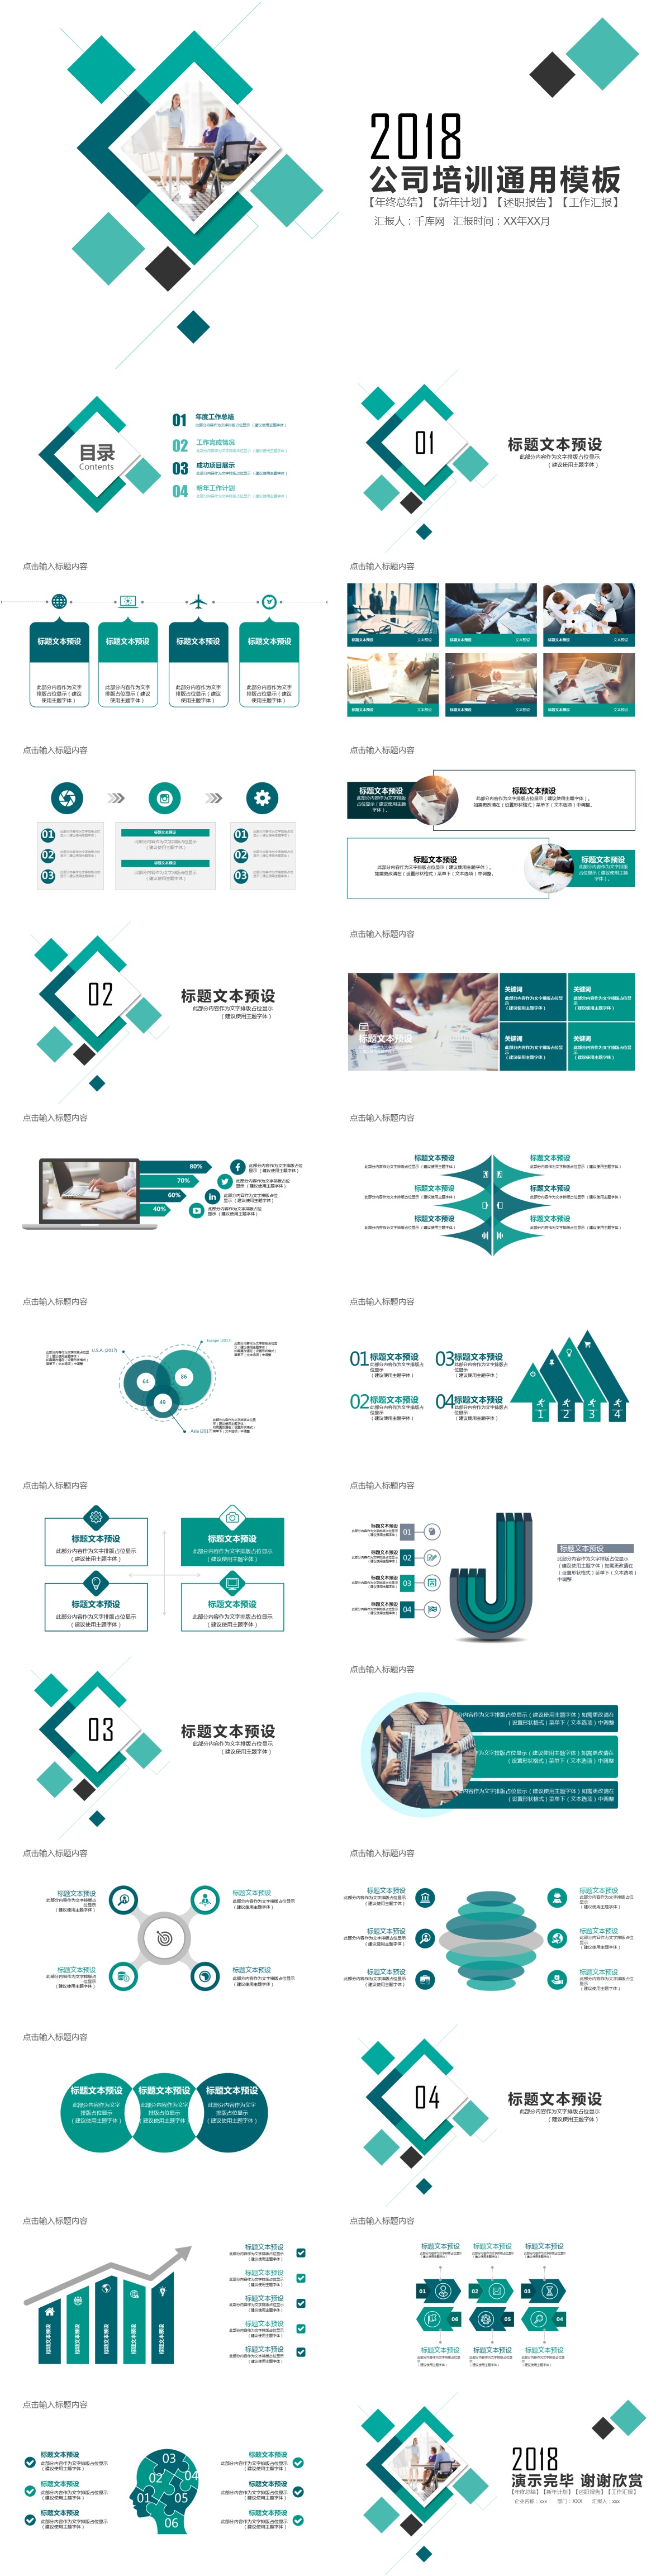 block graph ppt template corporate culture business management